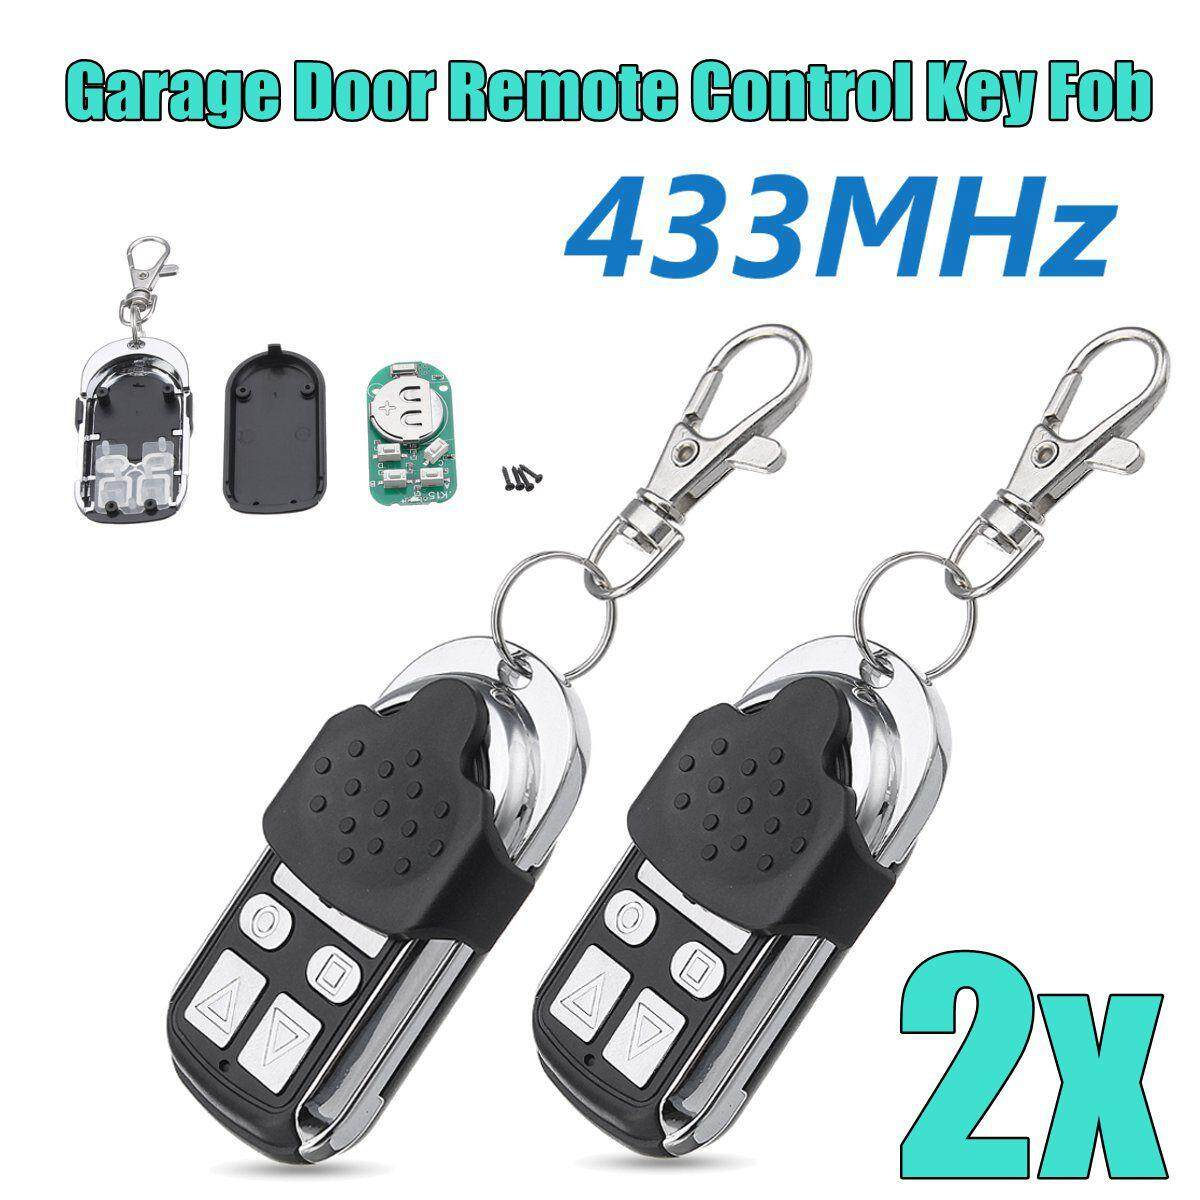 Keyless Entry For Sale Car Online Brands Prices Remote Ford Solenoid Gm No Hot Start 2pcs 433mhz Cloning Control Key Fob Garage Door Electric Gate Universal Intl